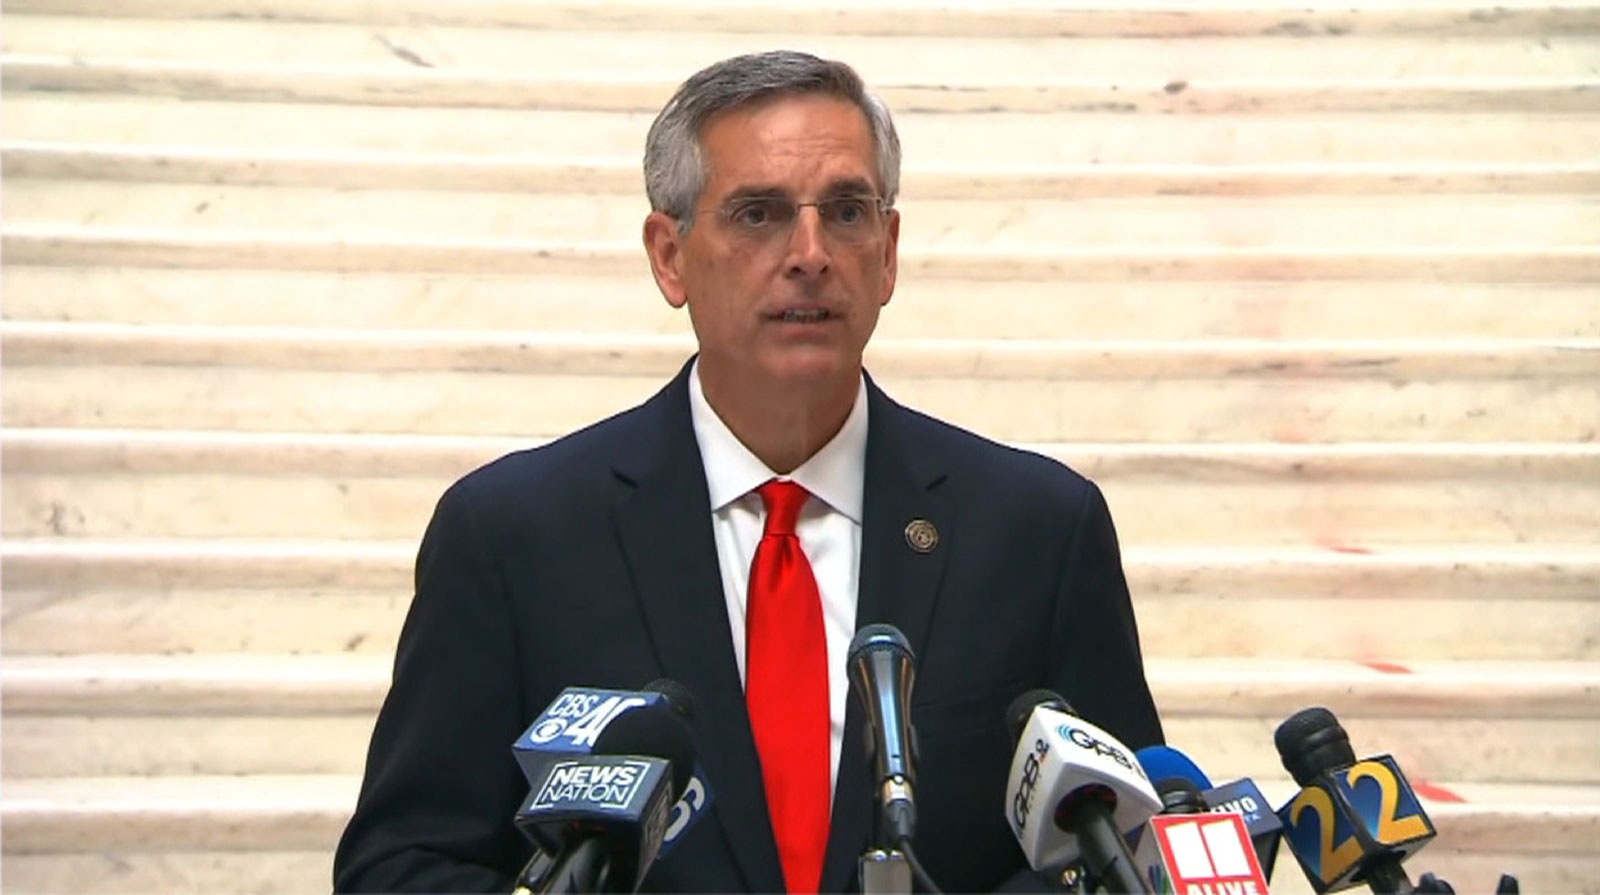 Georgia Secretary of State Brad Raffensperger speaks during a press conference on Friday, November 6.